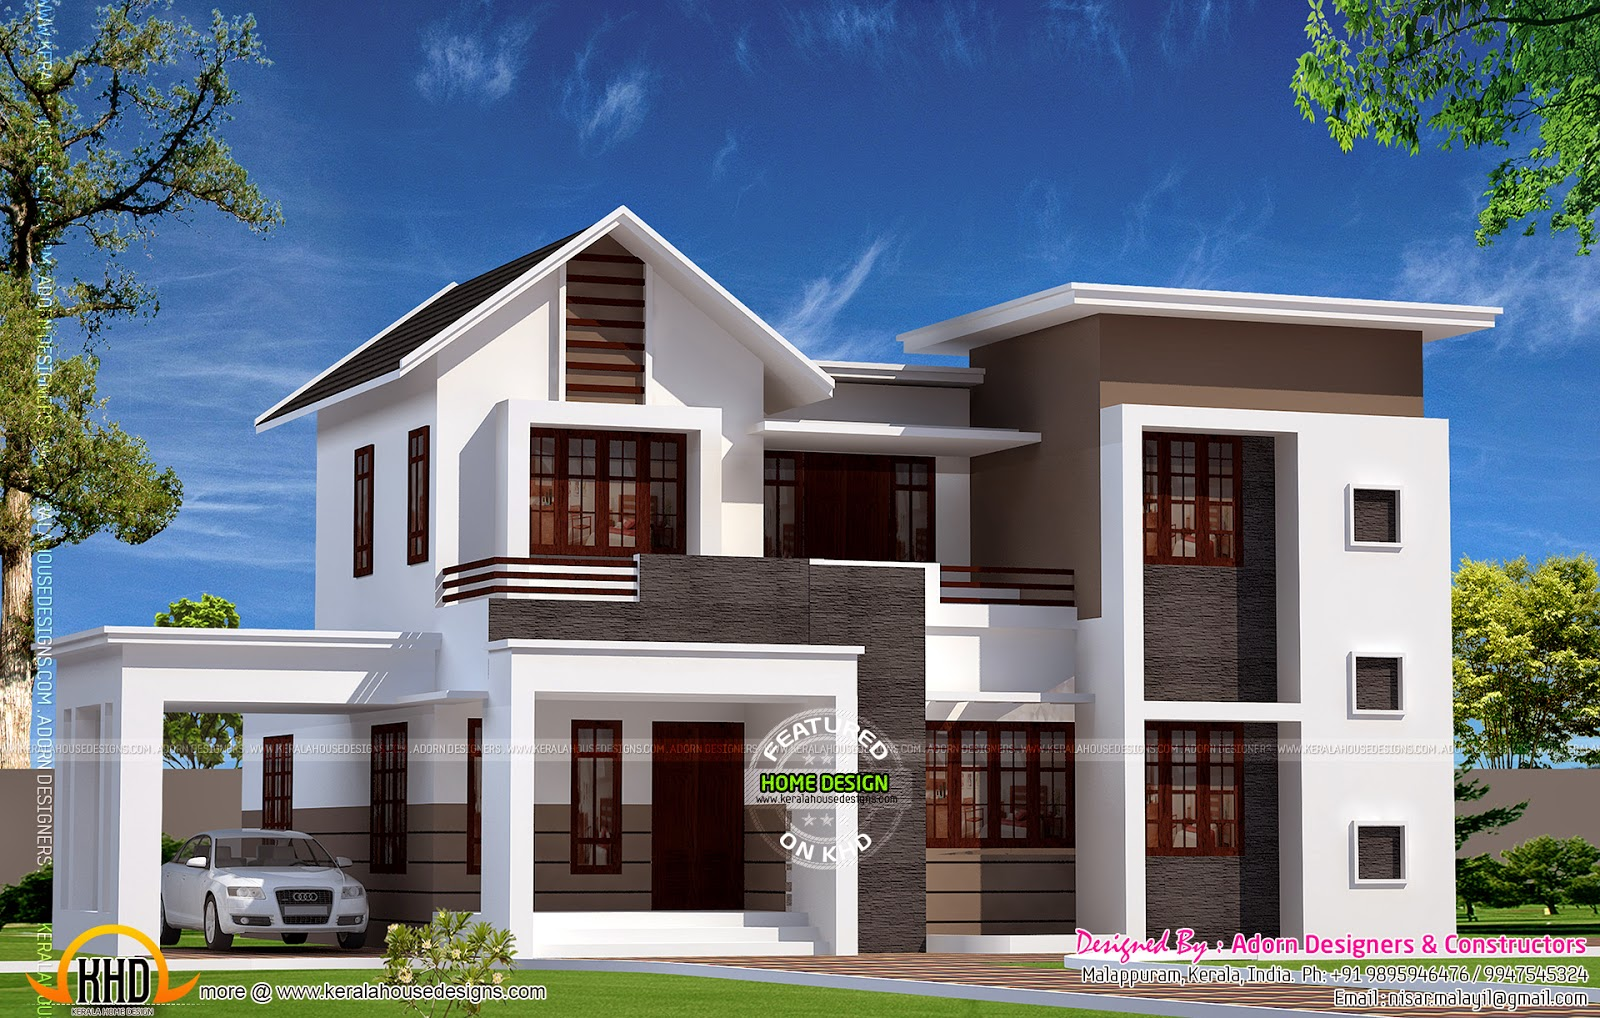 New Home Design Ideas favorite 2 nice images new home design ideas Home